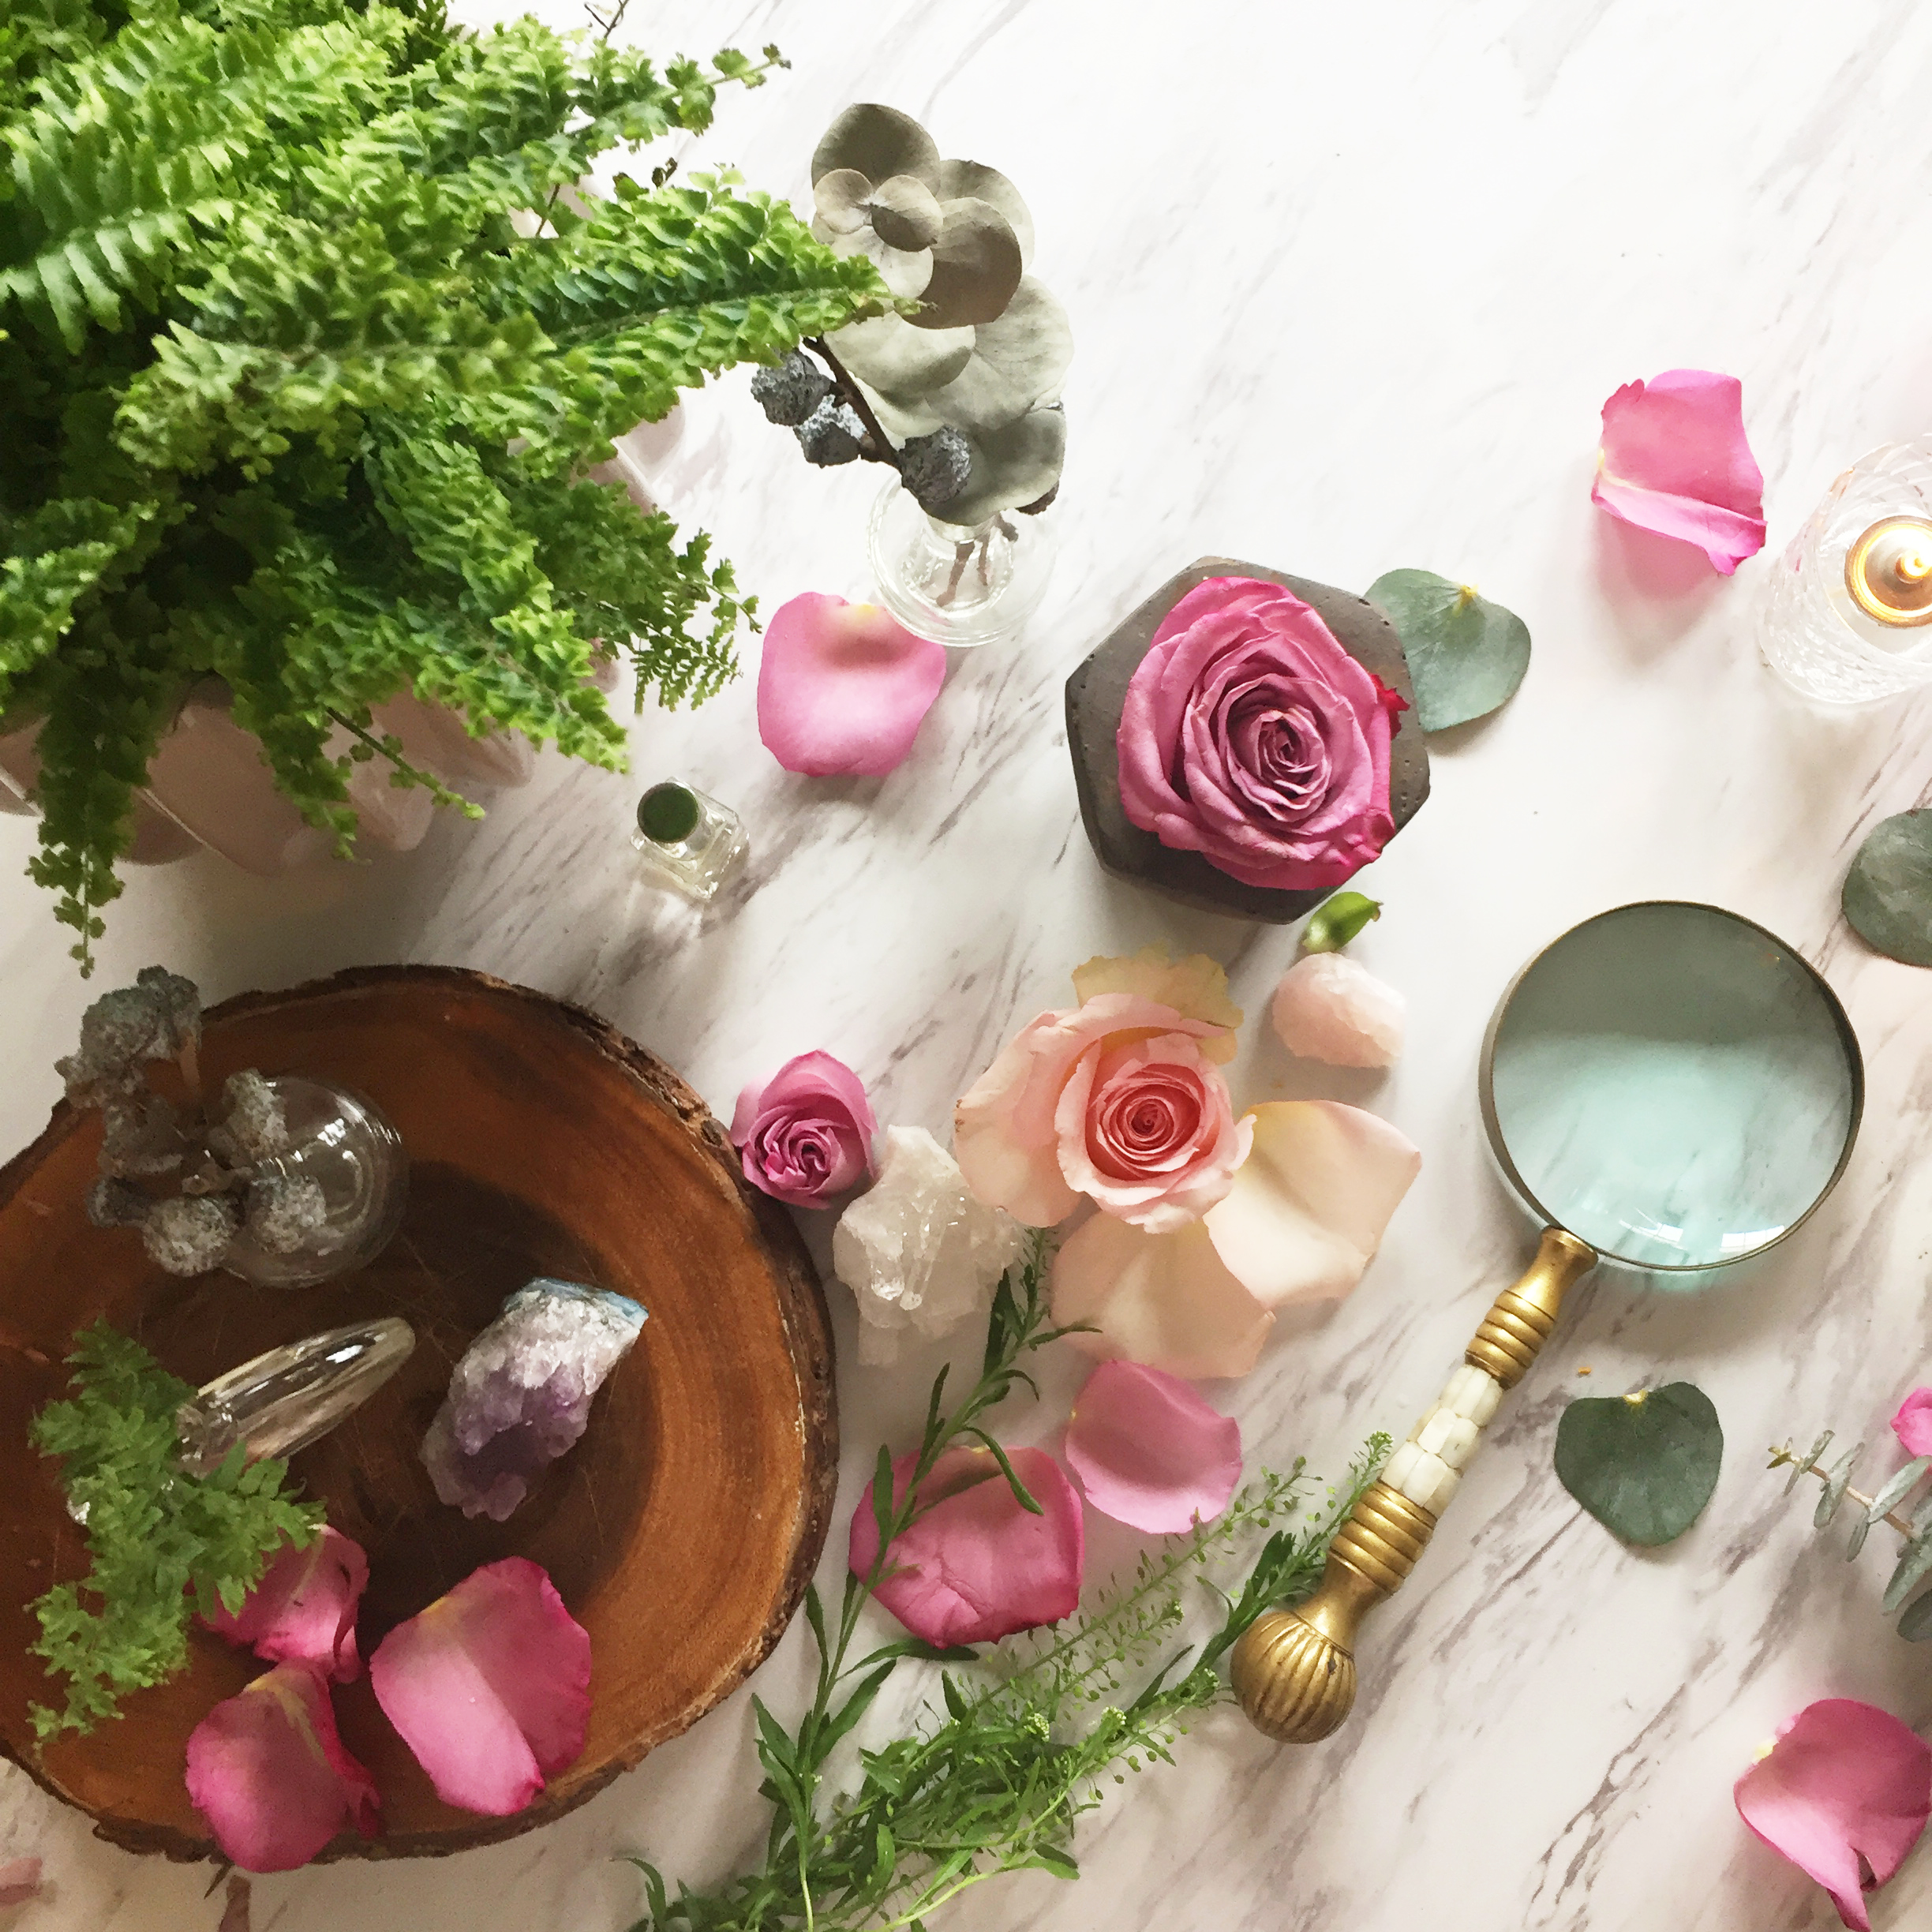 This is just a glimpse into the most popular flowers that women tend to favor, but there are so many more flower types you can choose from.